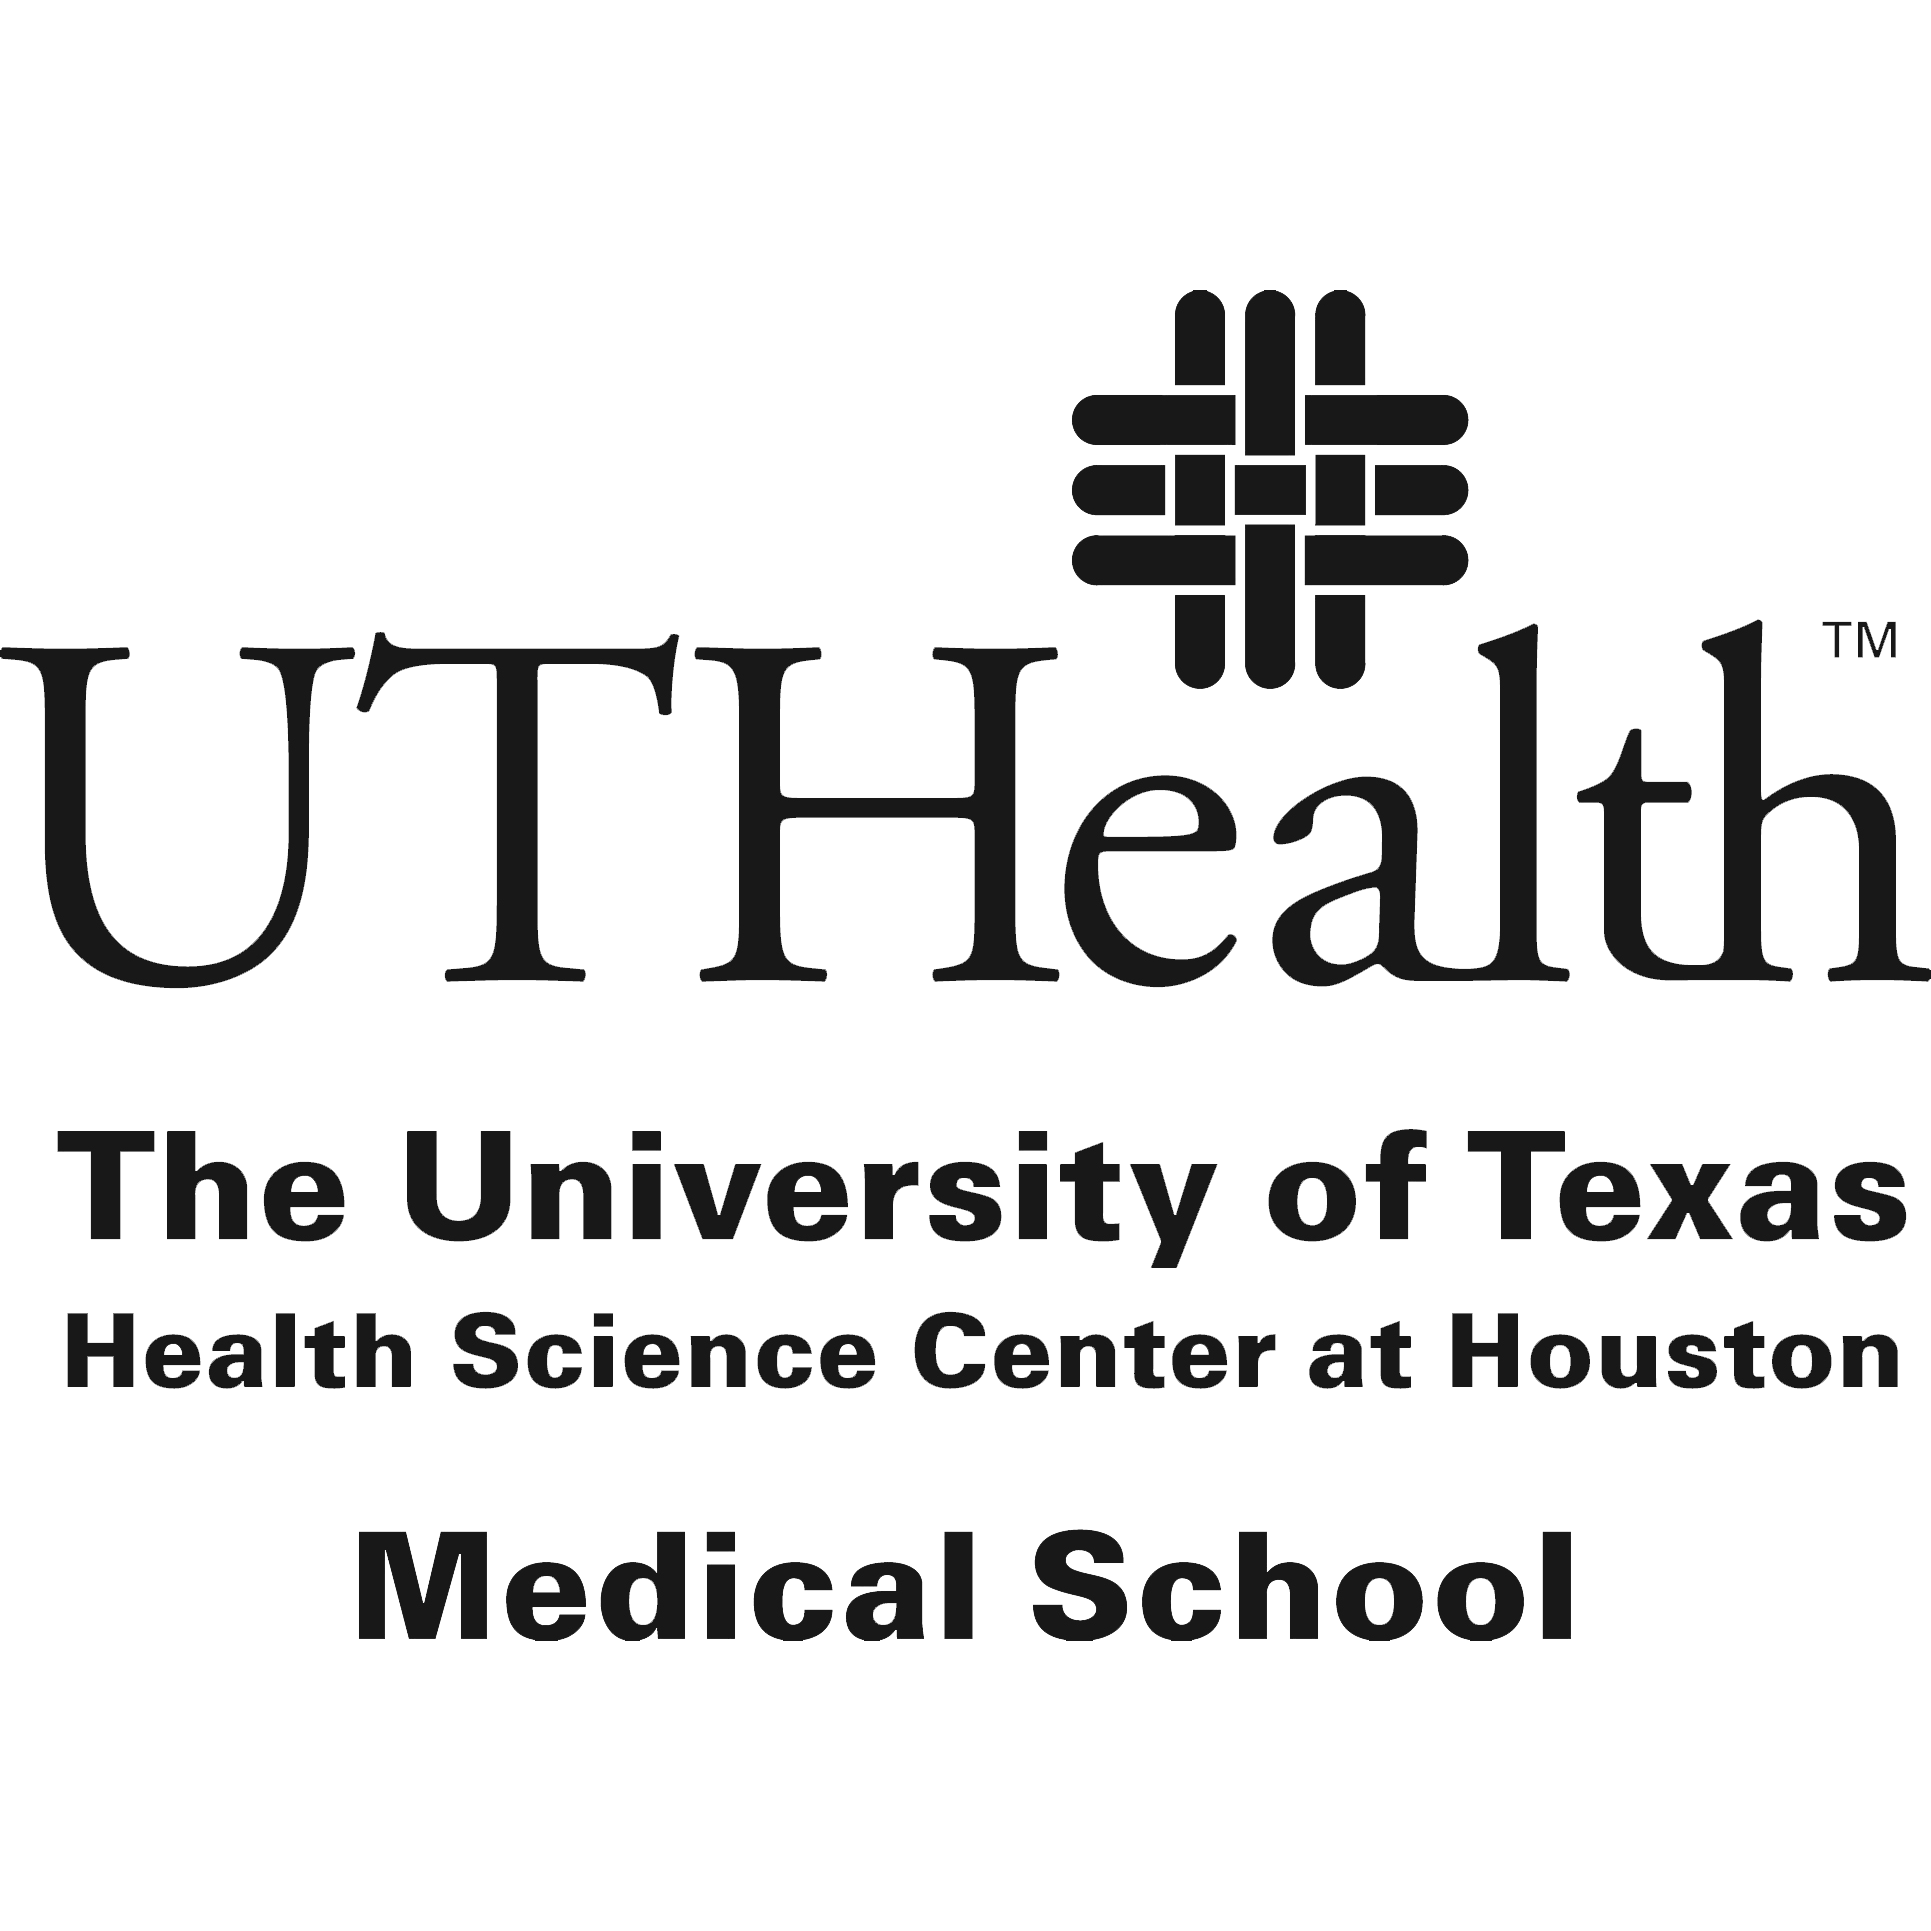 University of Texas Health Sciences Center Logo